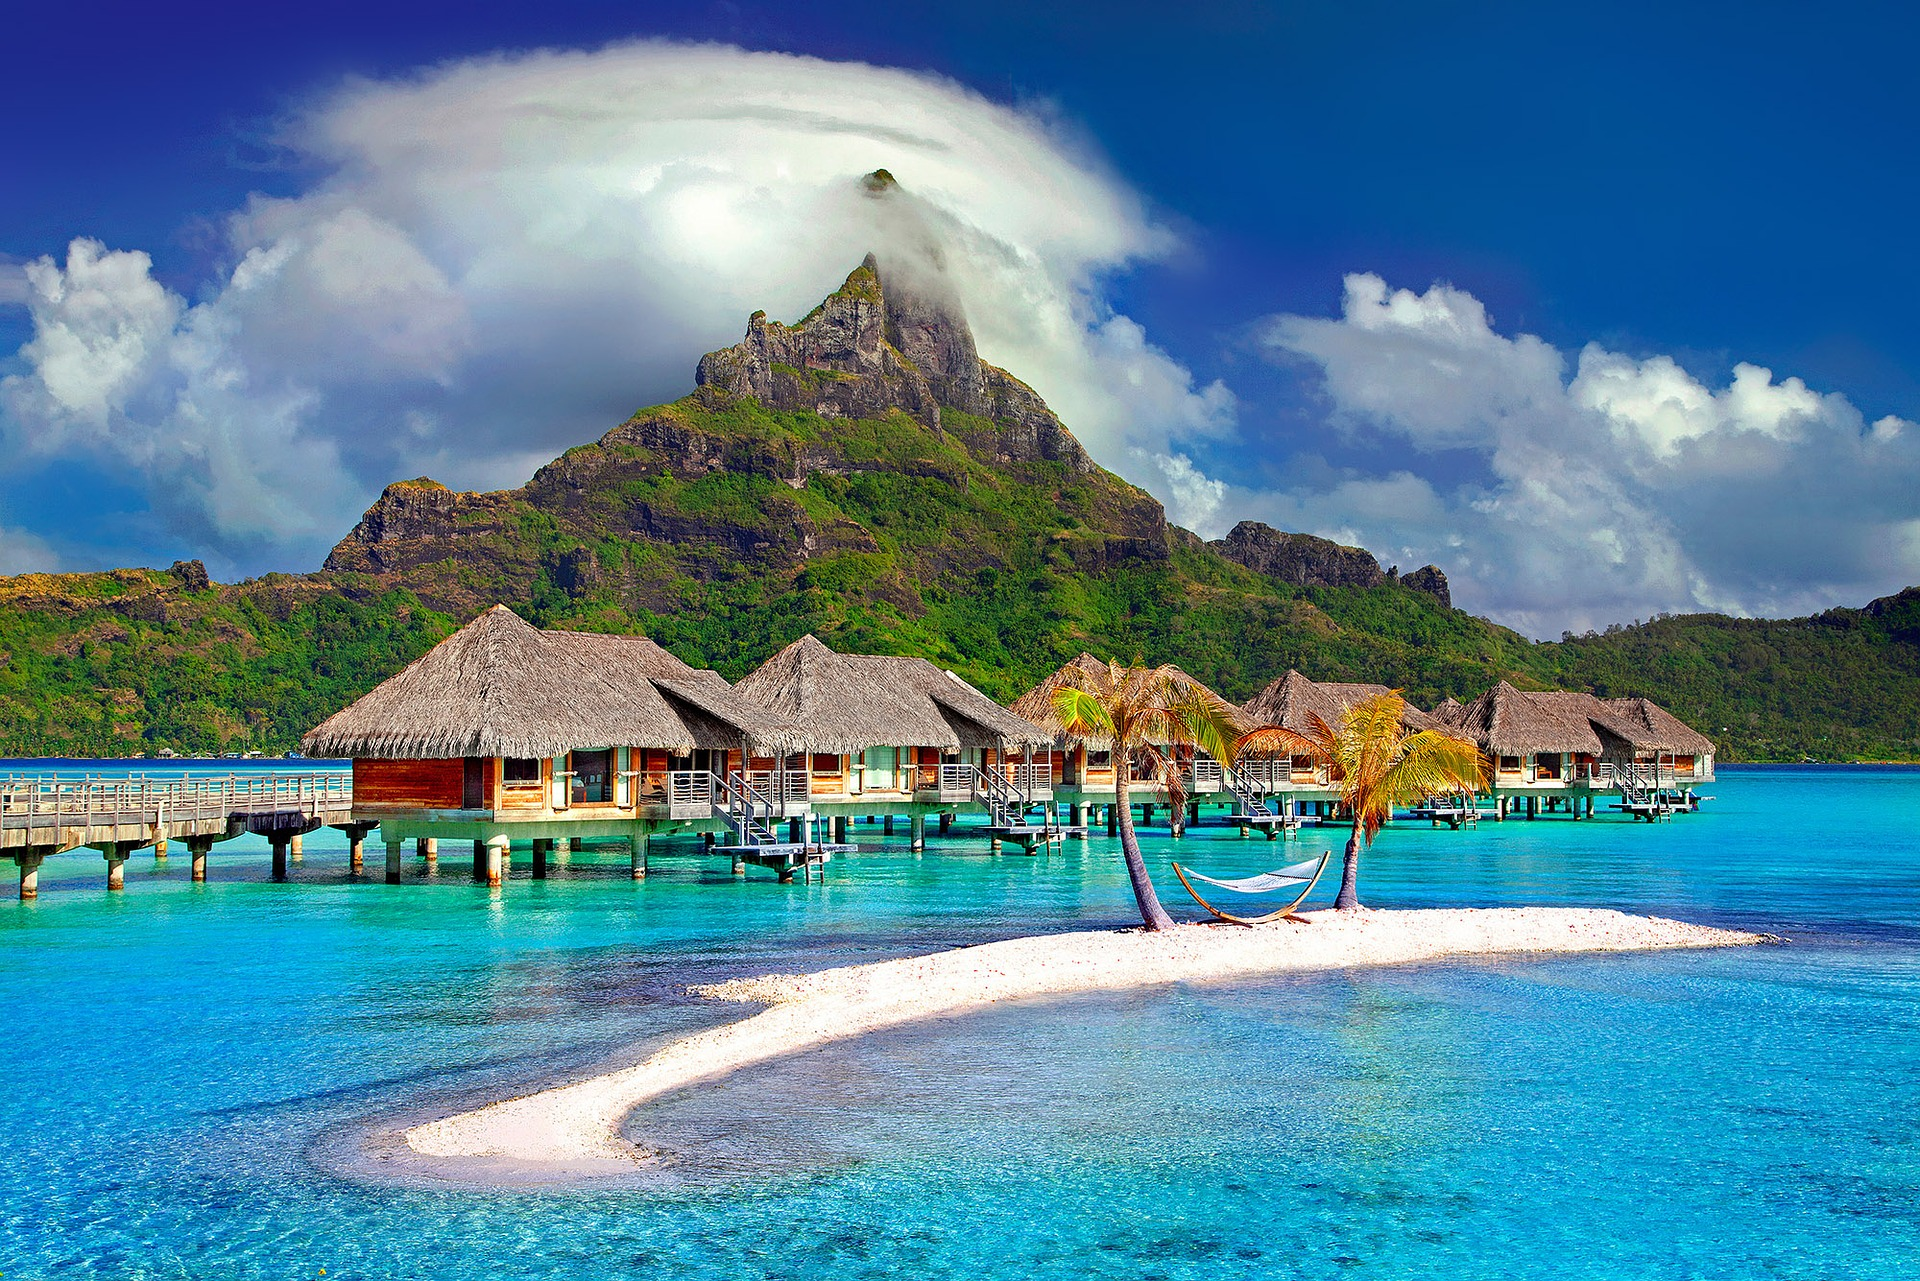 Featured photo for this post - a photo of a bungalow in Bora Bora